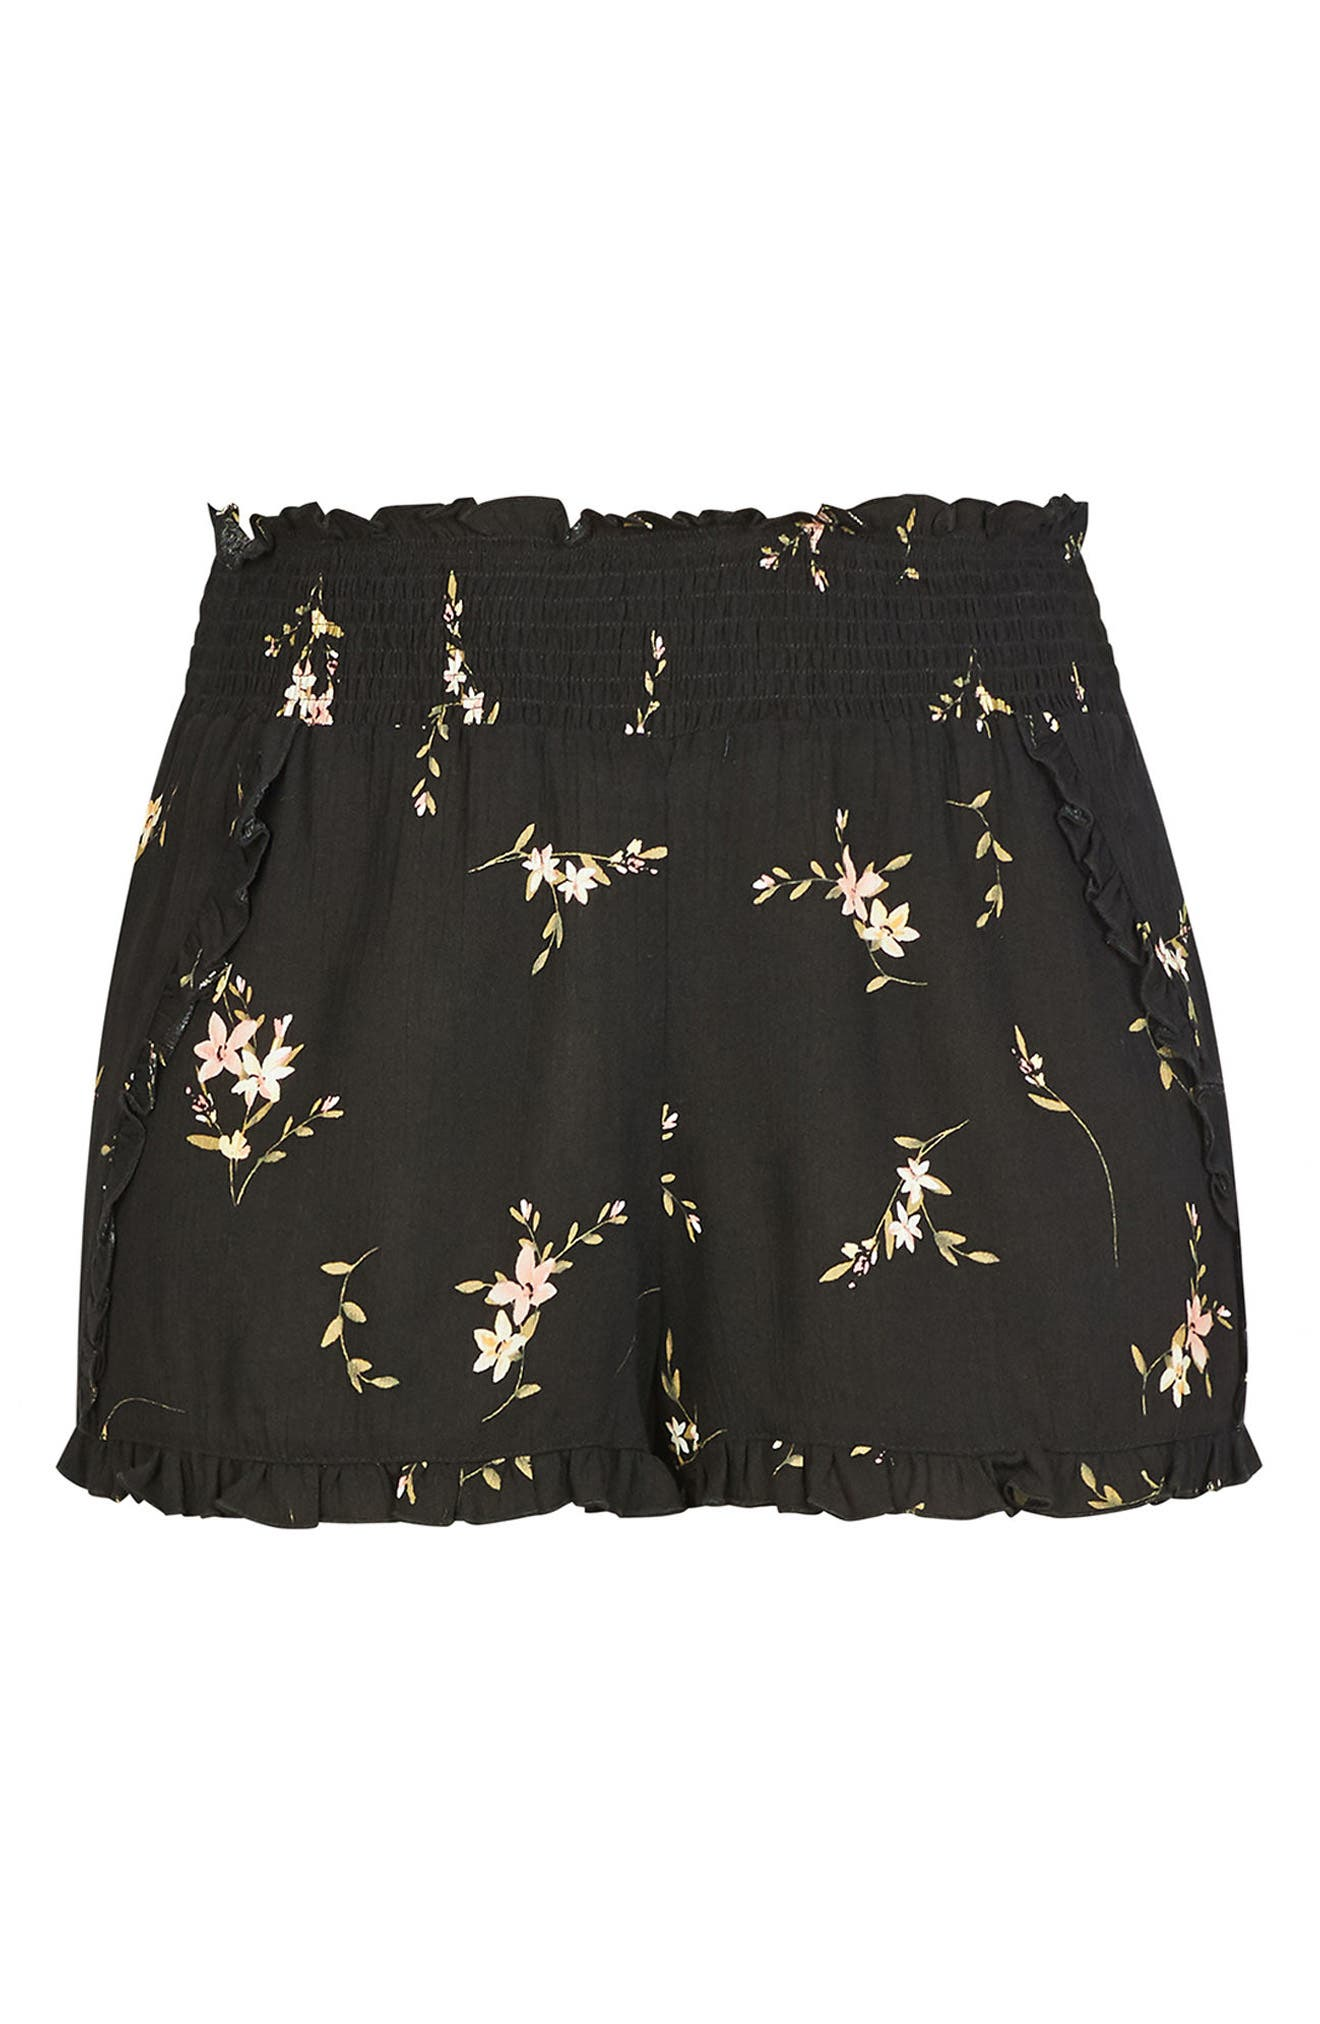 Aerial Floral Pull-On Shorts,                             Alternate thumbnail 4, color,                             Aerial Floral